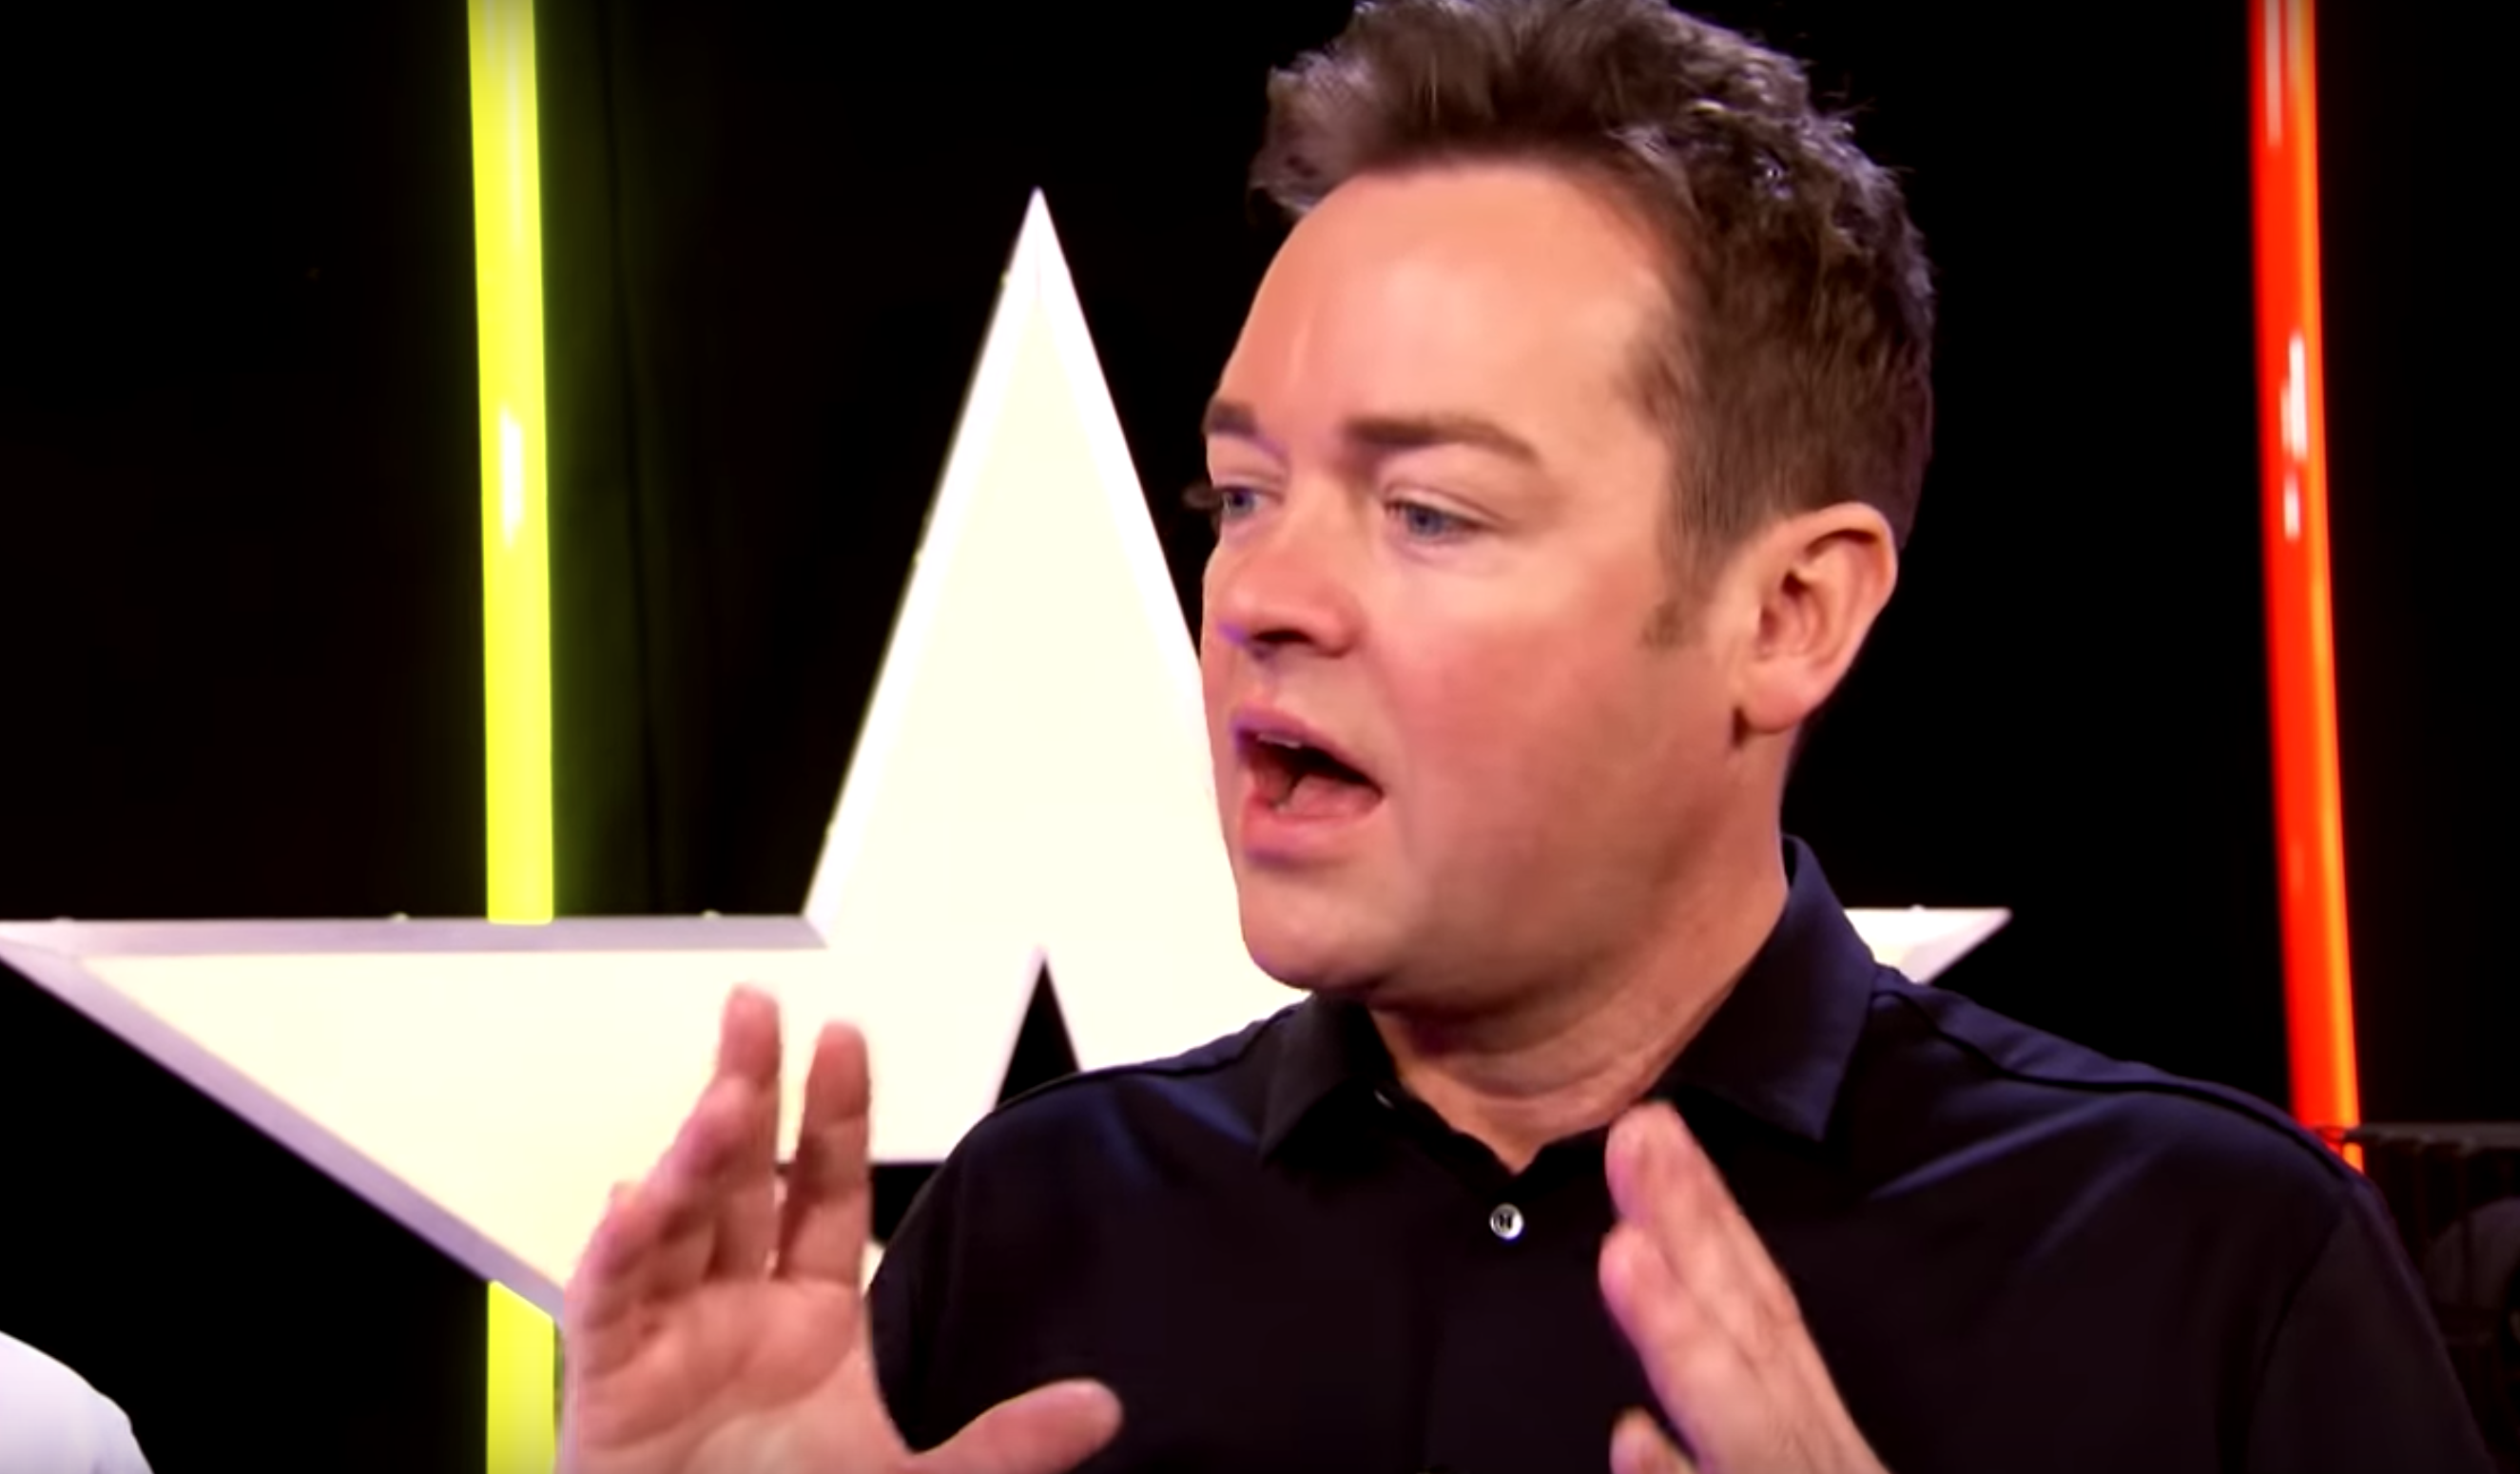 Britain's Got Talent fans demand ITV bring back BGMT and Stephen Mulhern